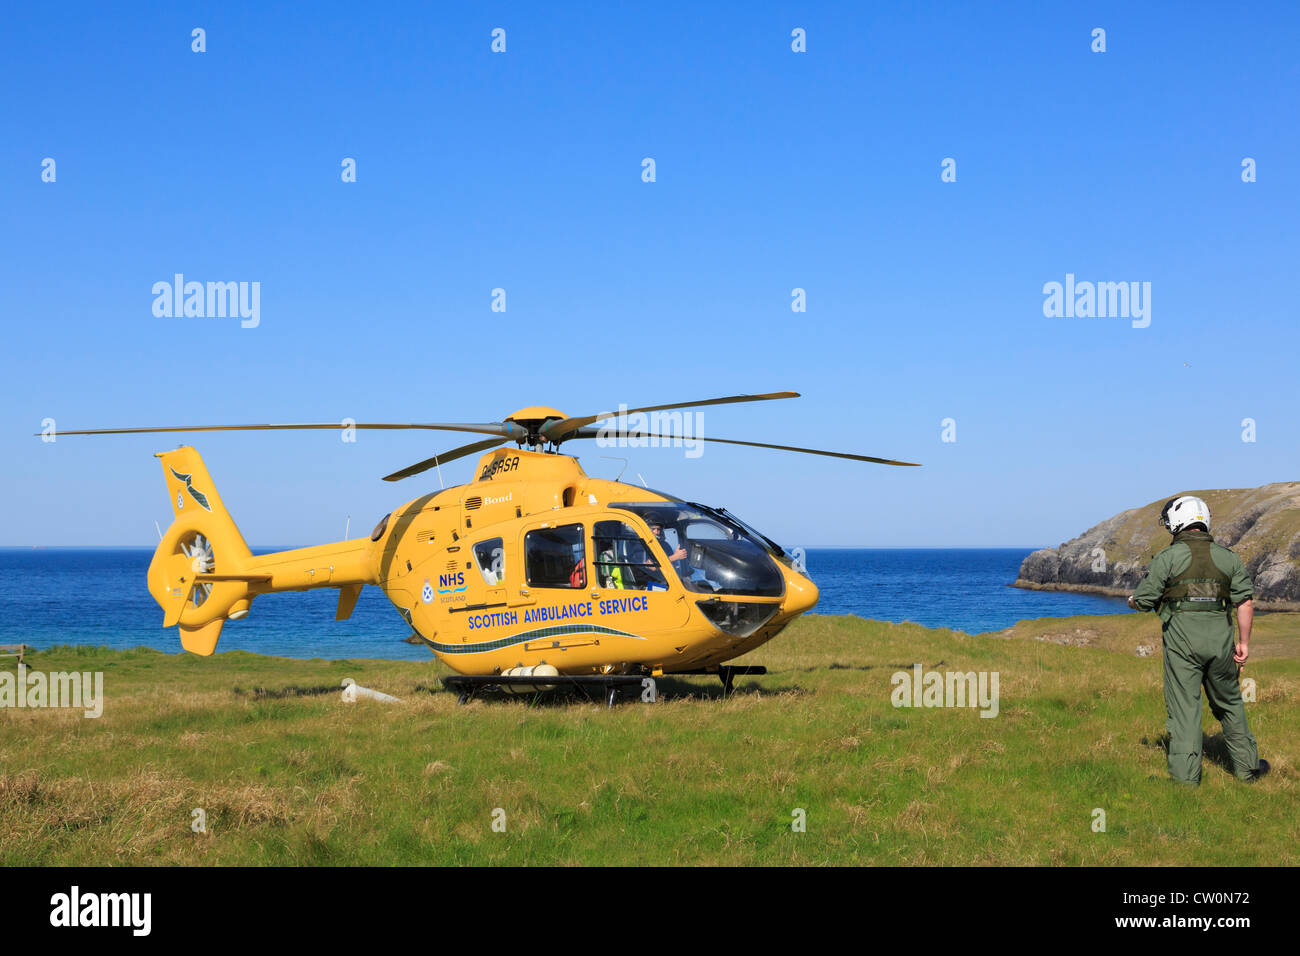 Scottish Air Ambulance Service Helicopter preparing to take off after a rescue mission on remote North West Highlands - Stock Image